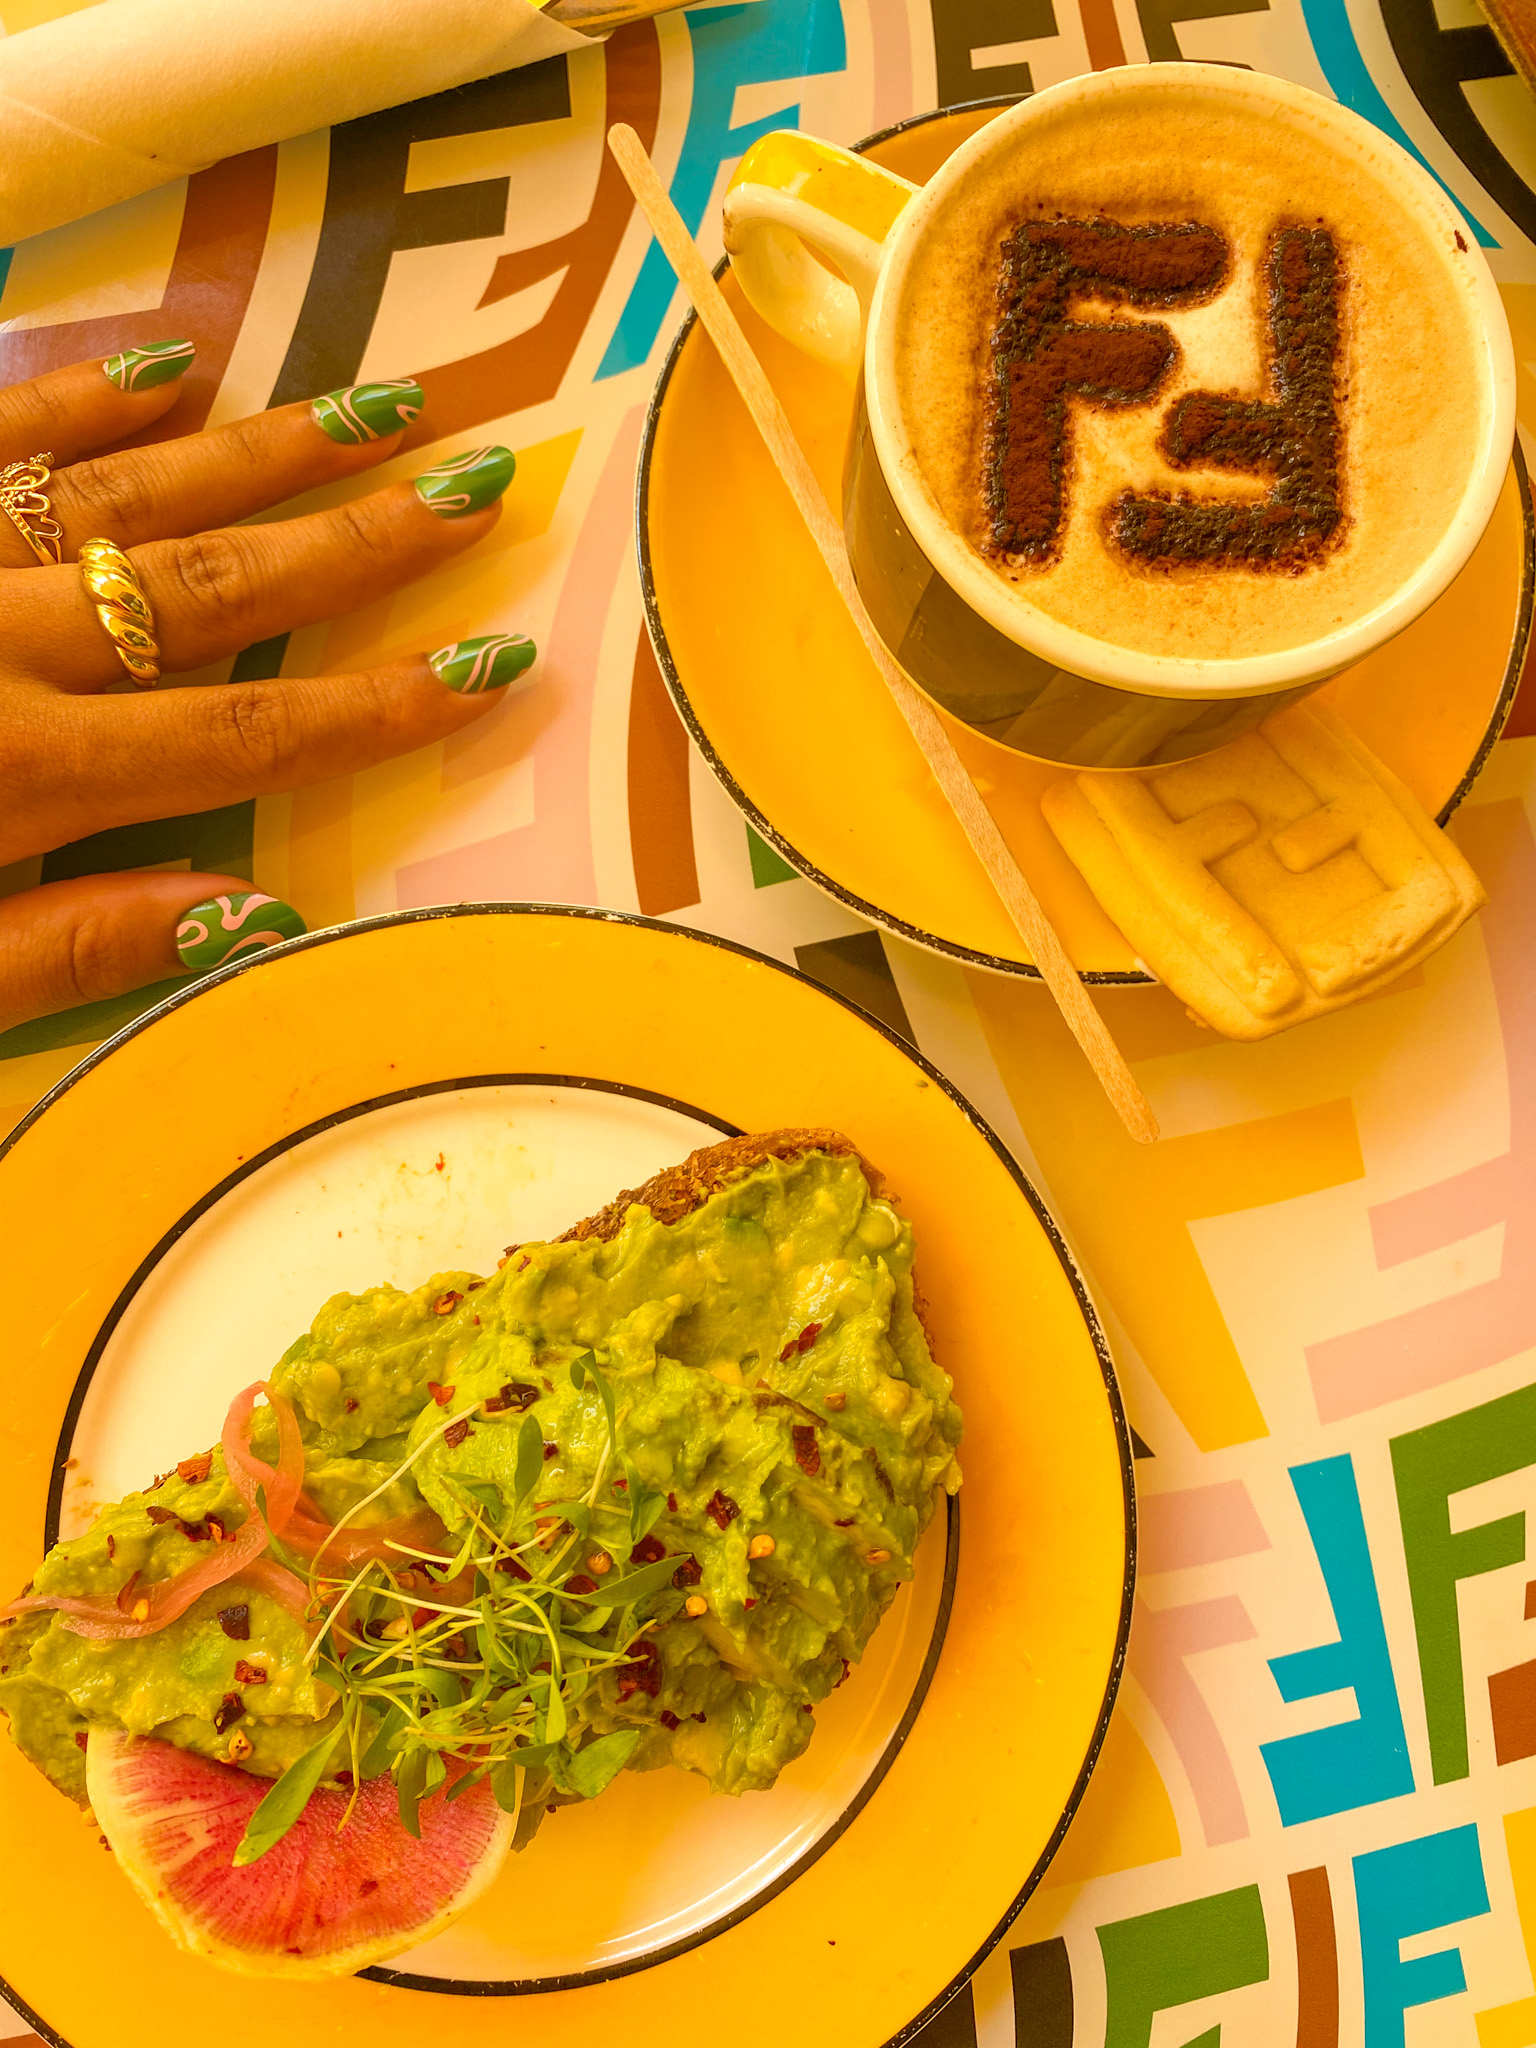 black girl solo travel guide to Miami Beach Florida, Fendi Caffe in Miami, Miami Beach travel guide, what to eat in Miami